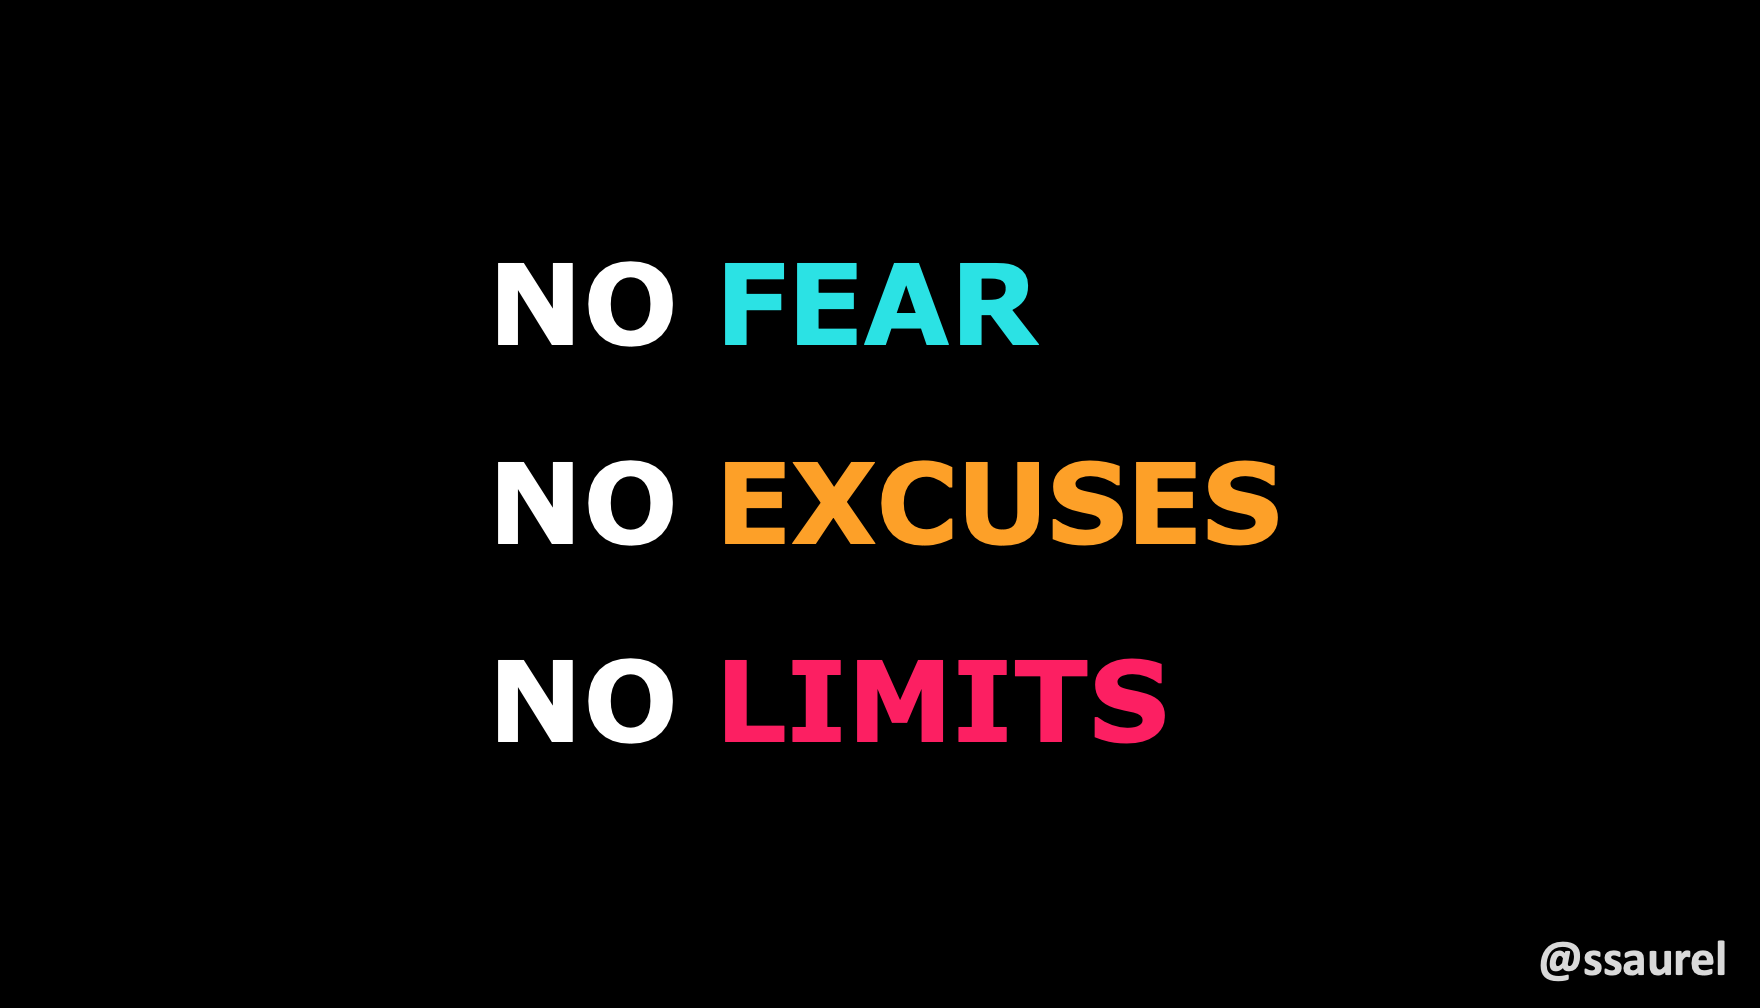 [Image] No Fear. No Excuses. No Limits.